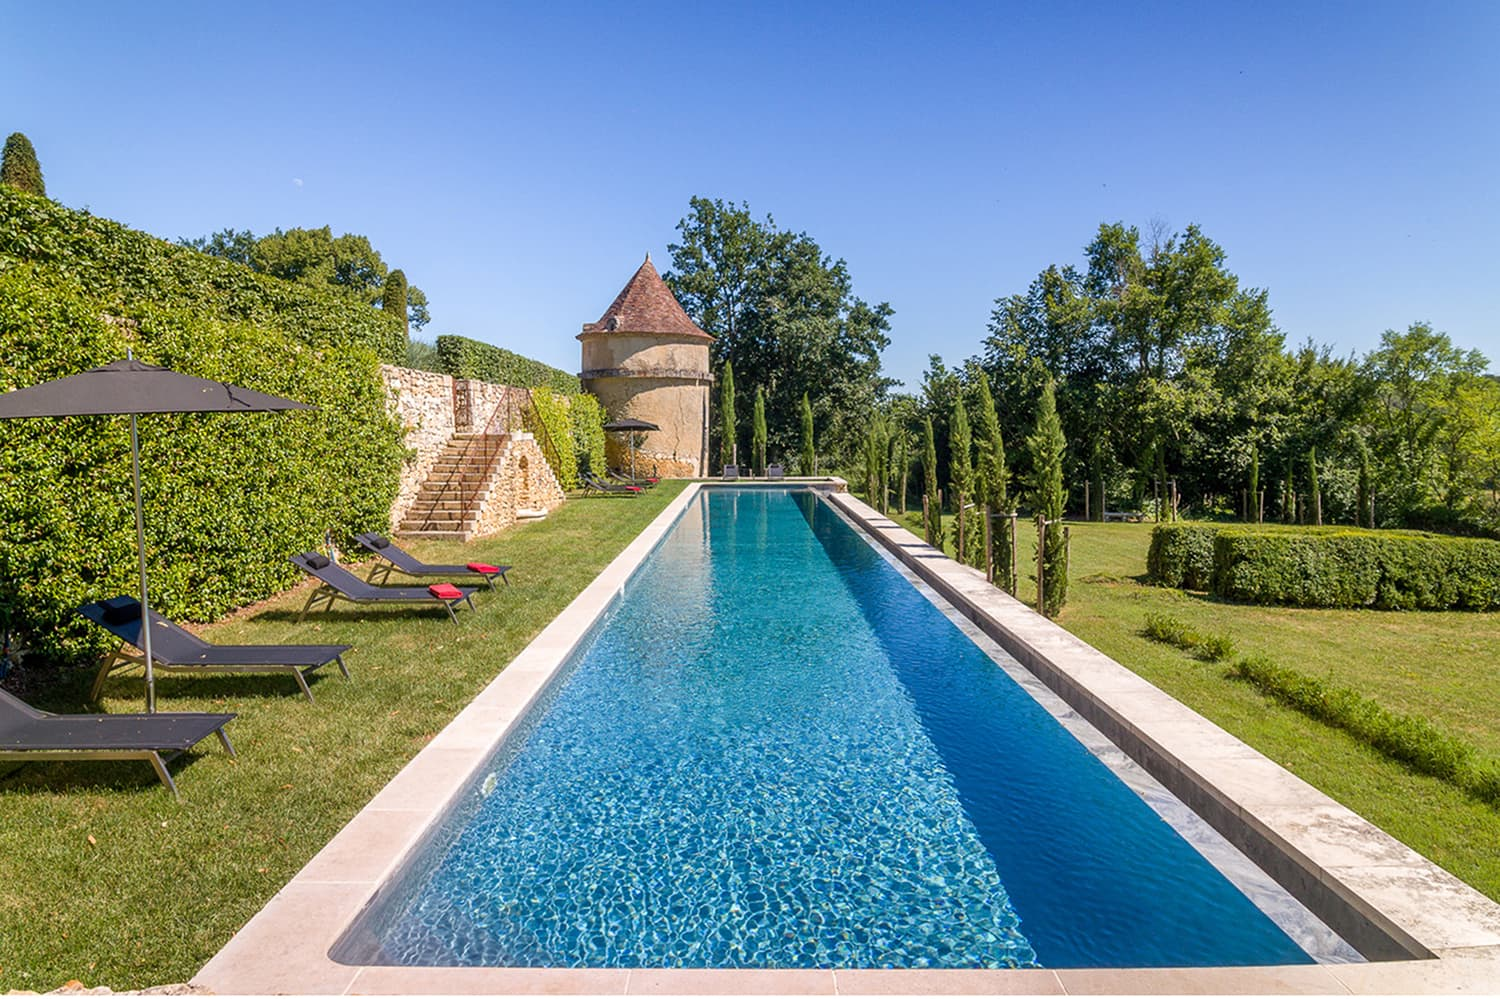 Holiday home with private swimming pool in France